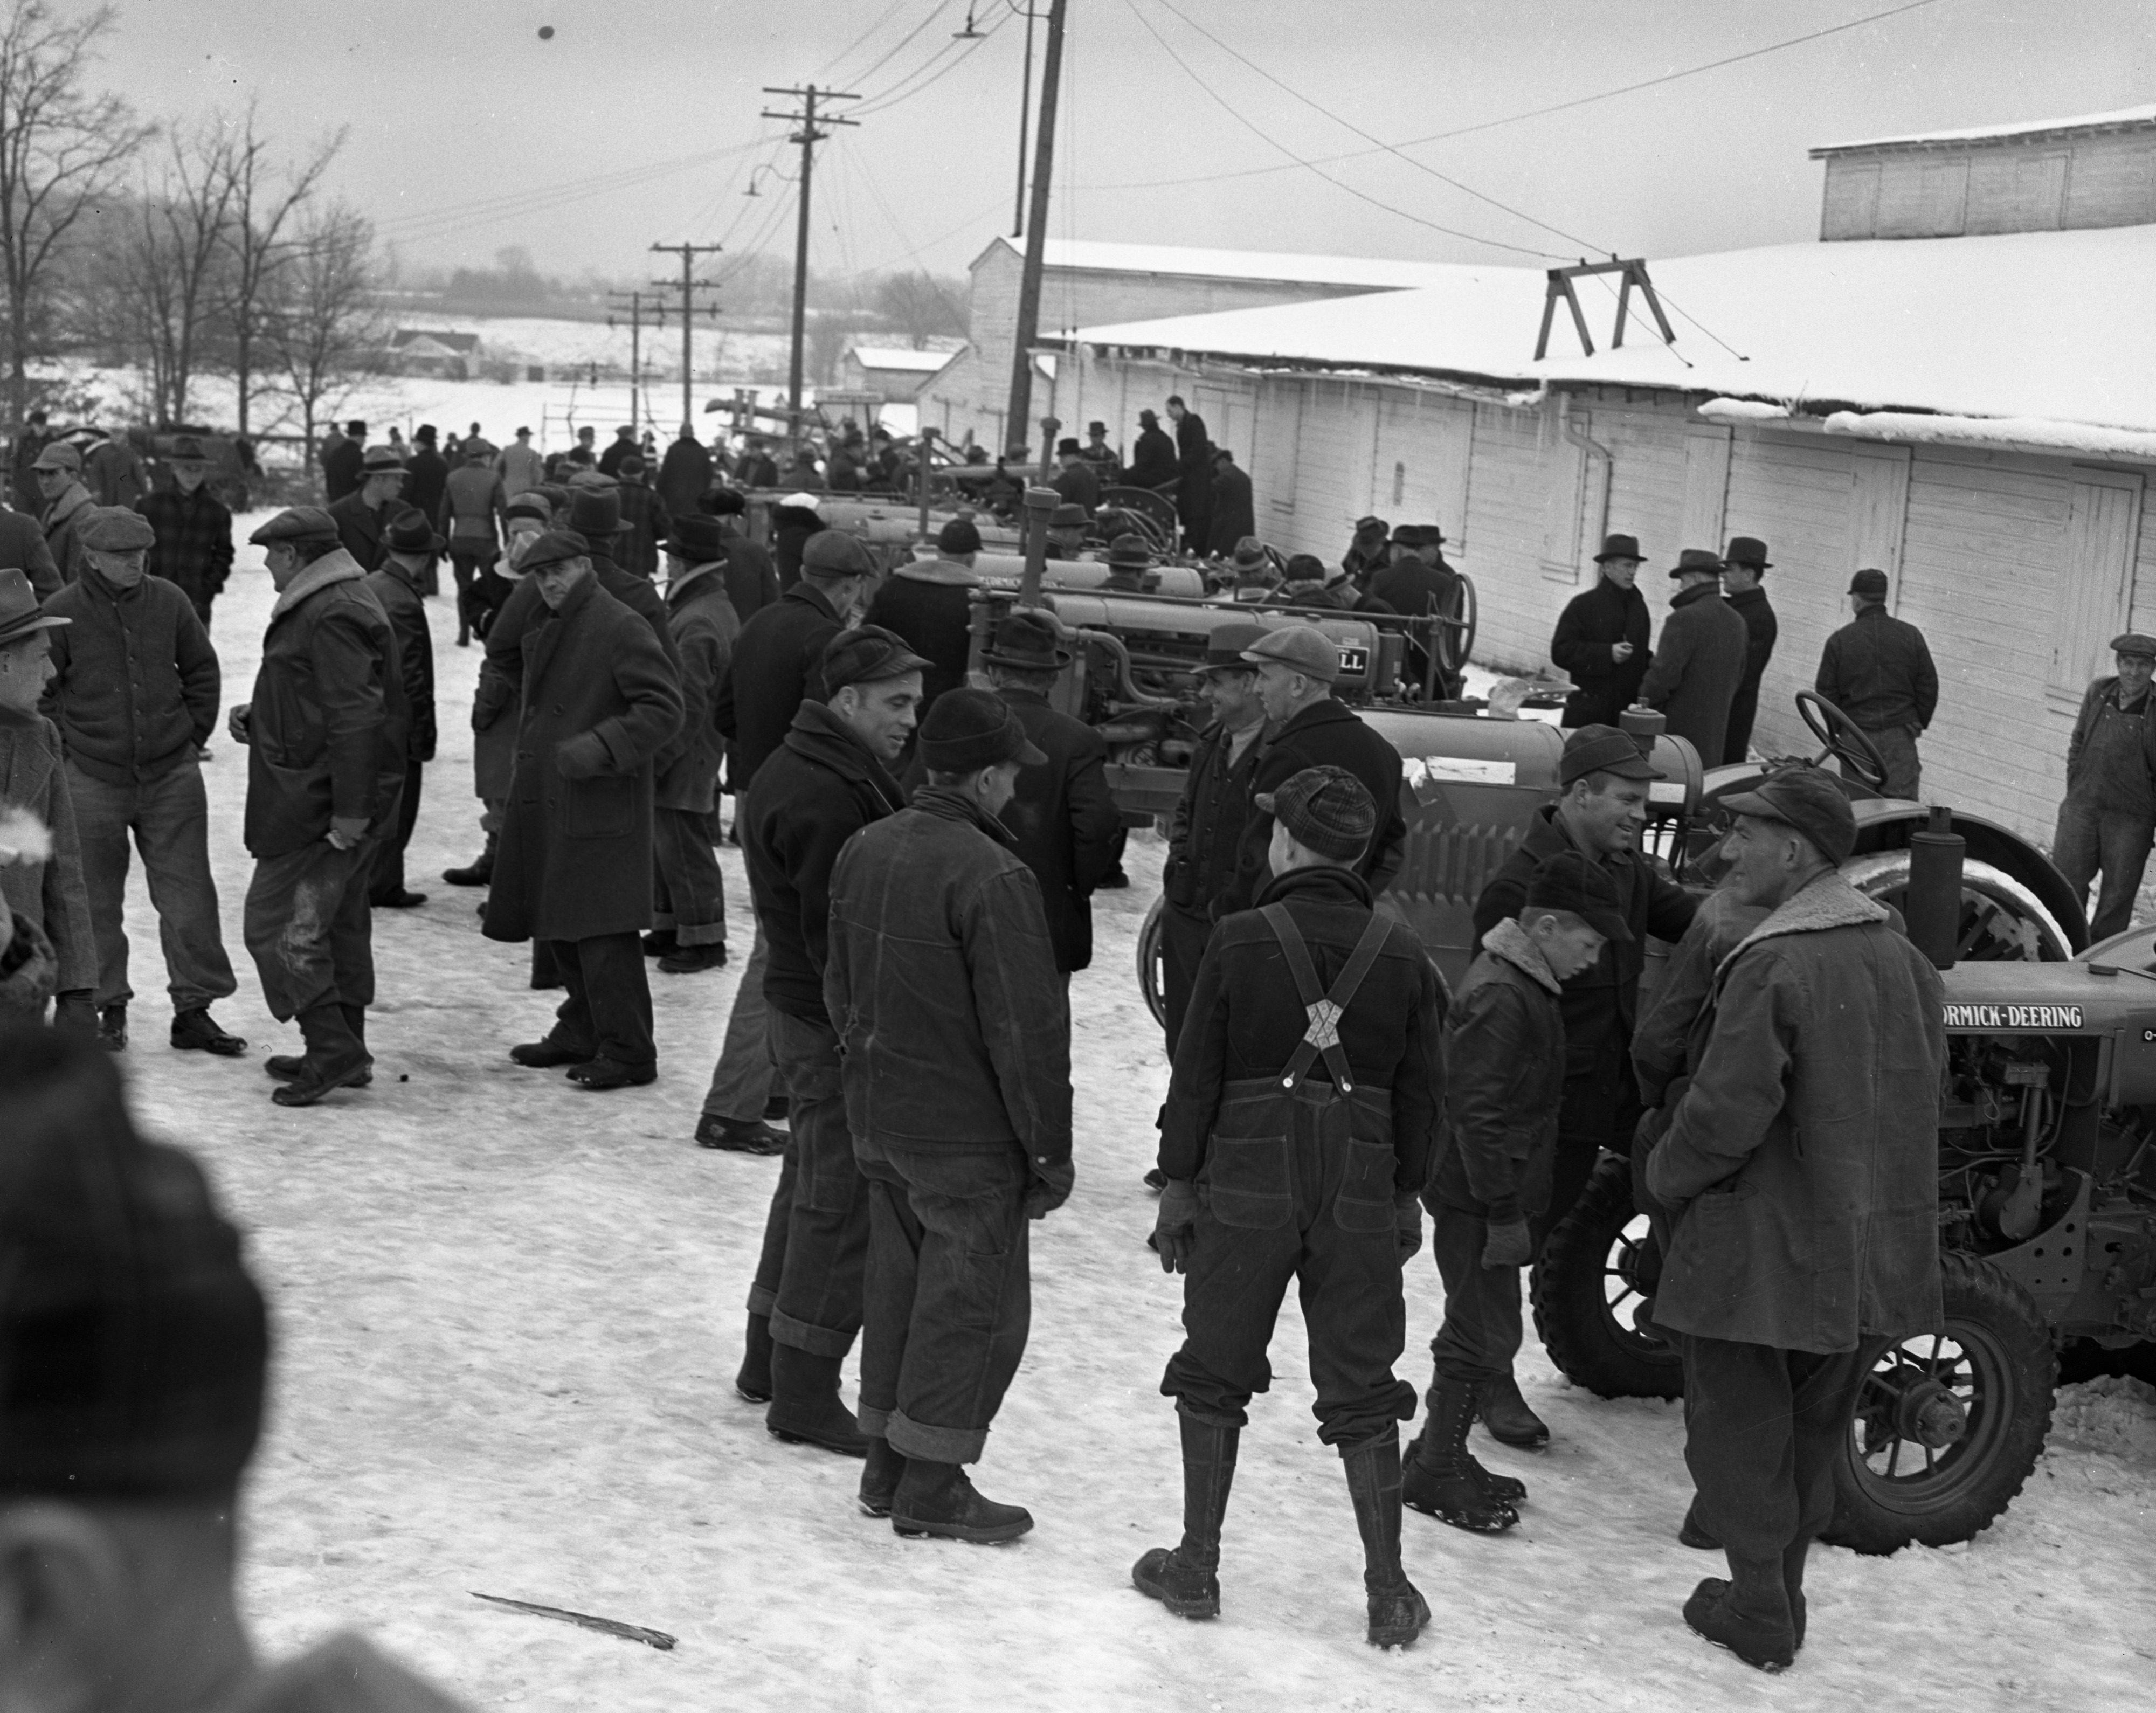 Farm Auction at the Fairgrounds, March 1940 image